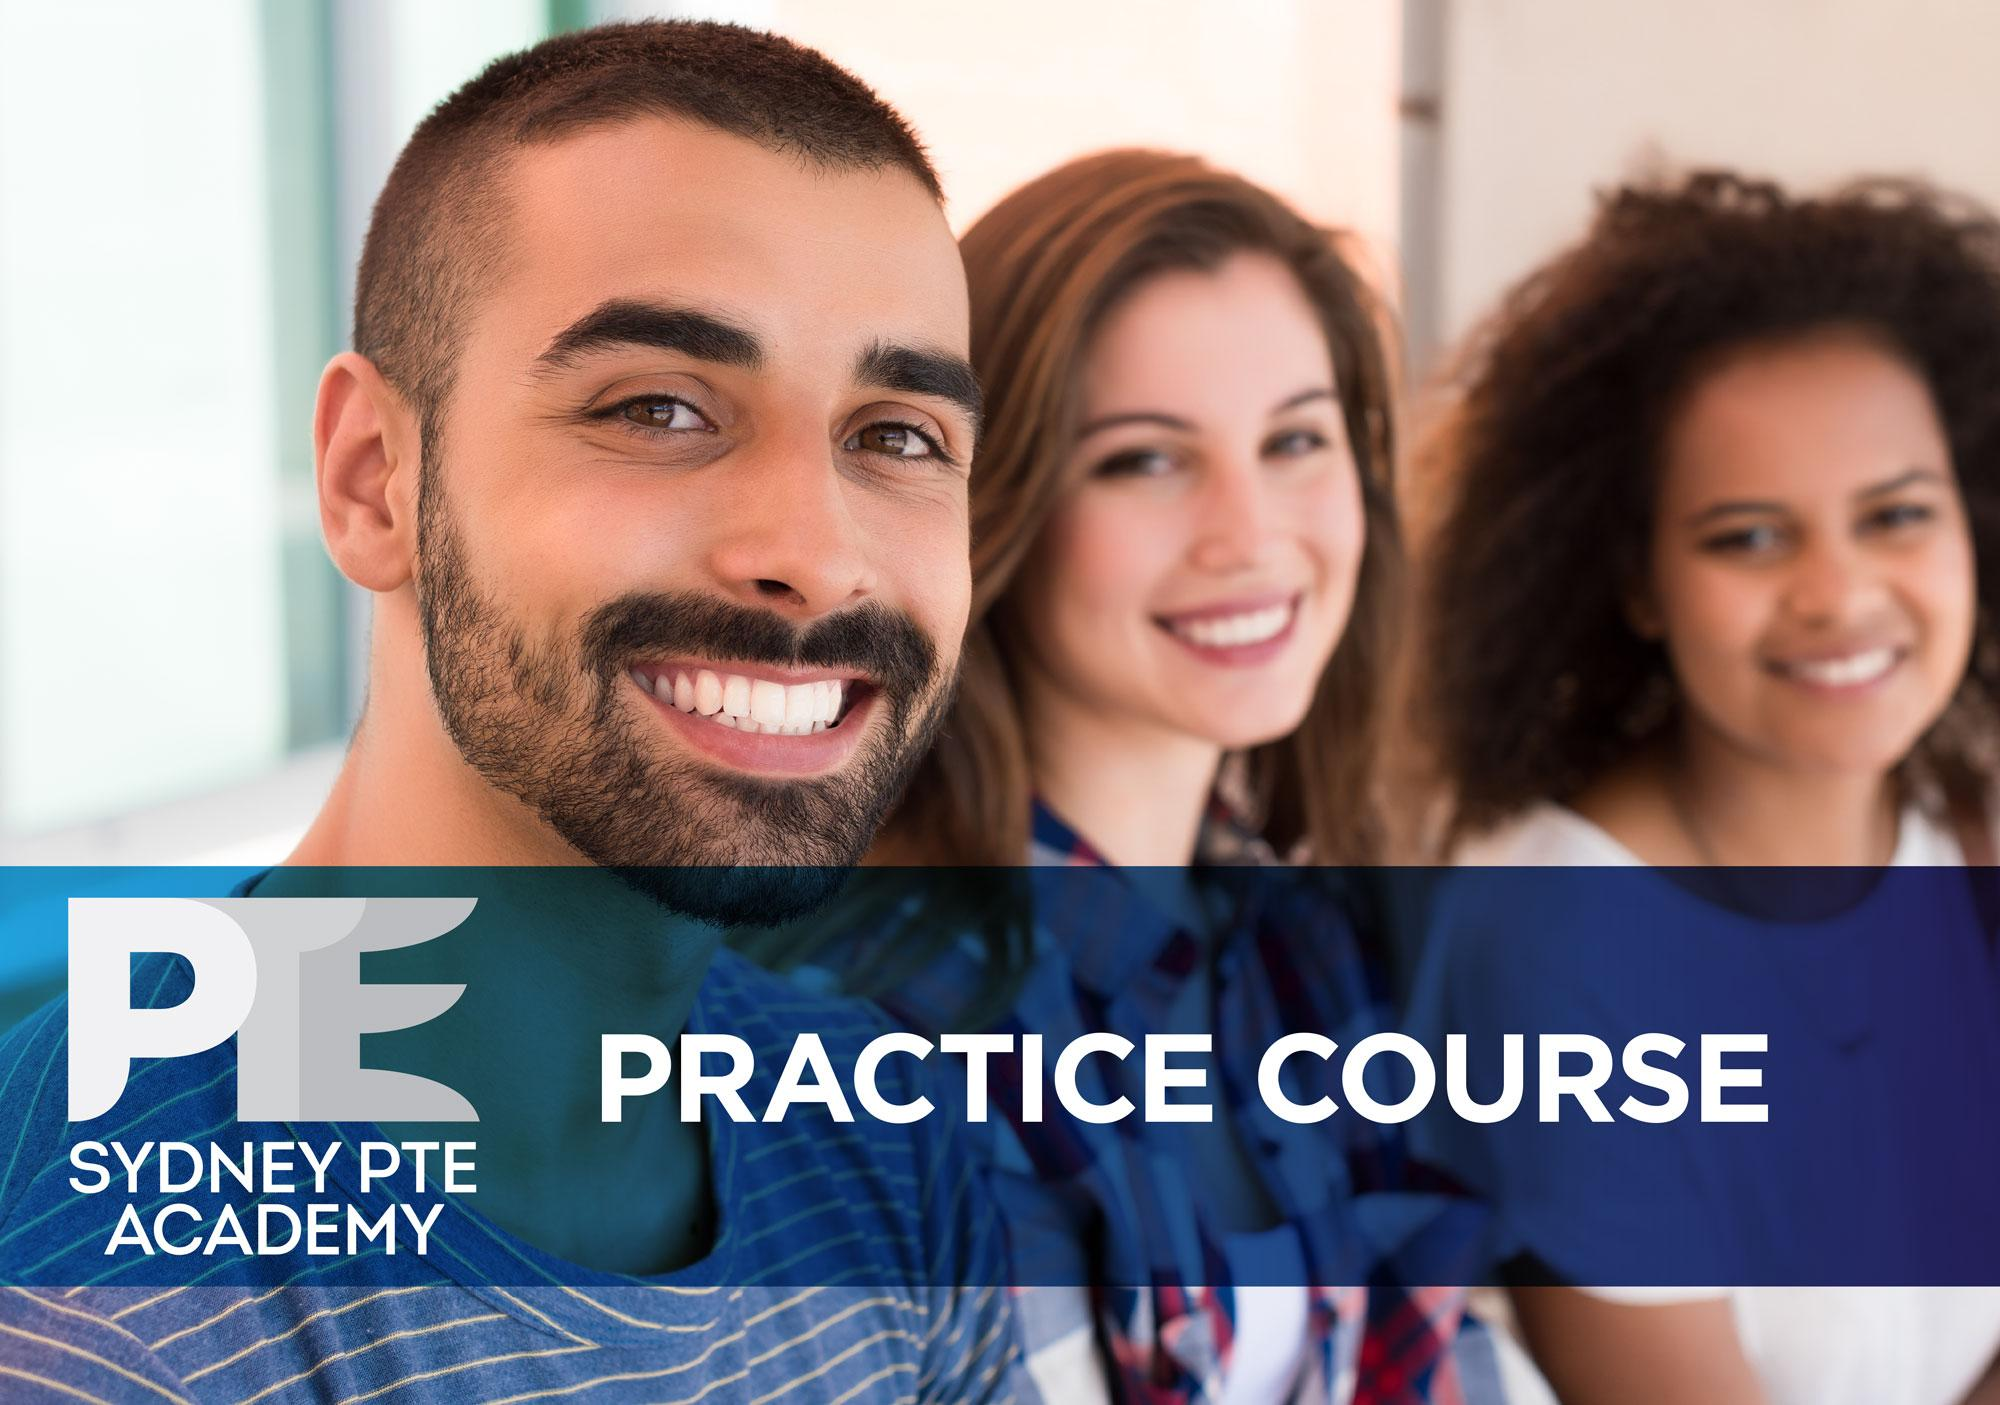 PTE Practice Course| Advanced Classes for PTE 79+